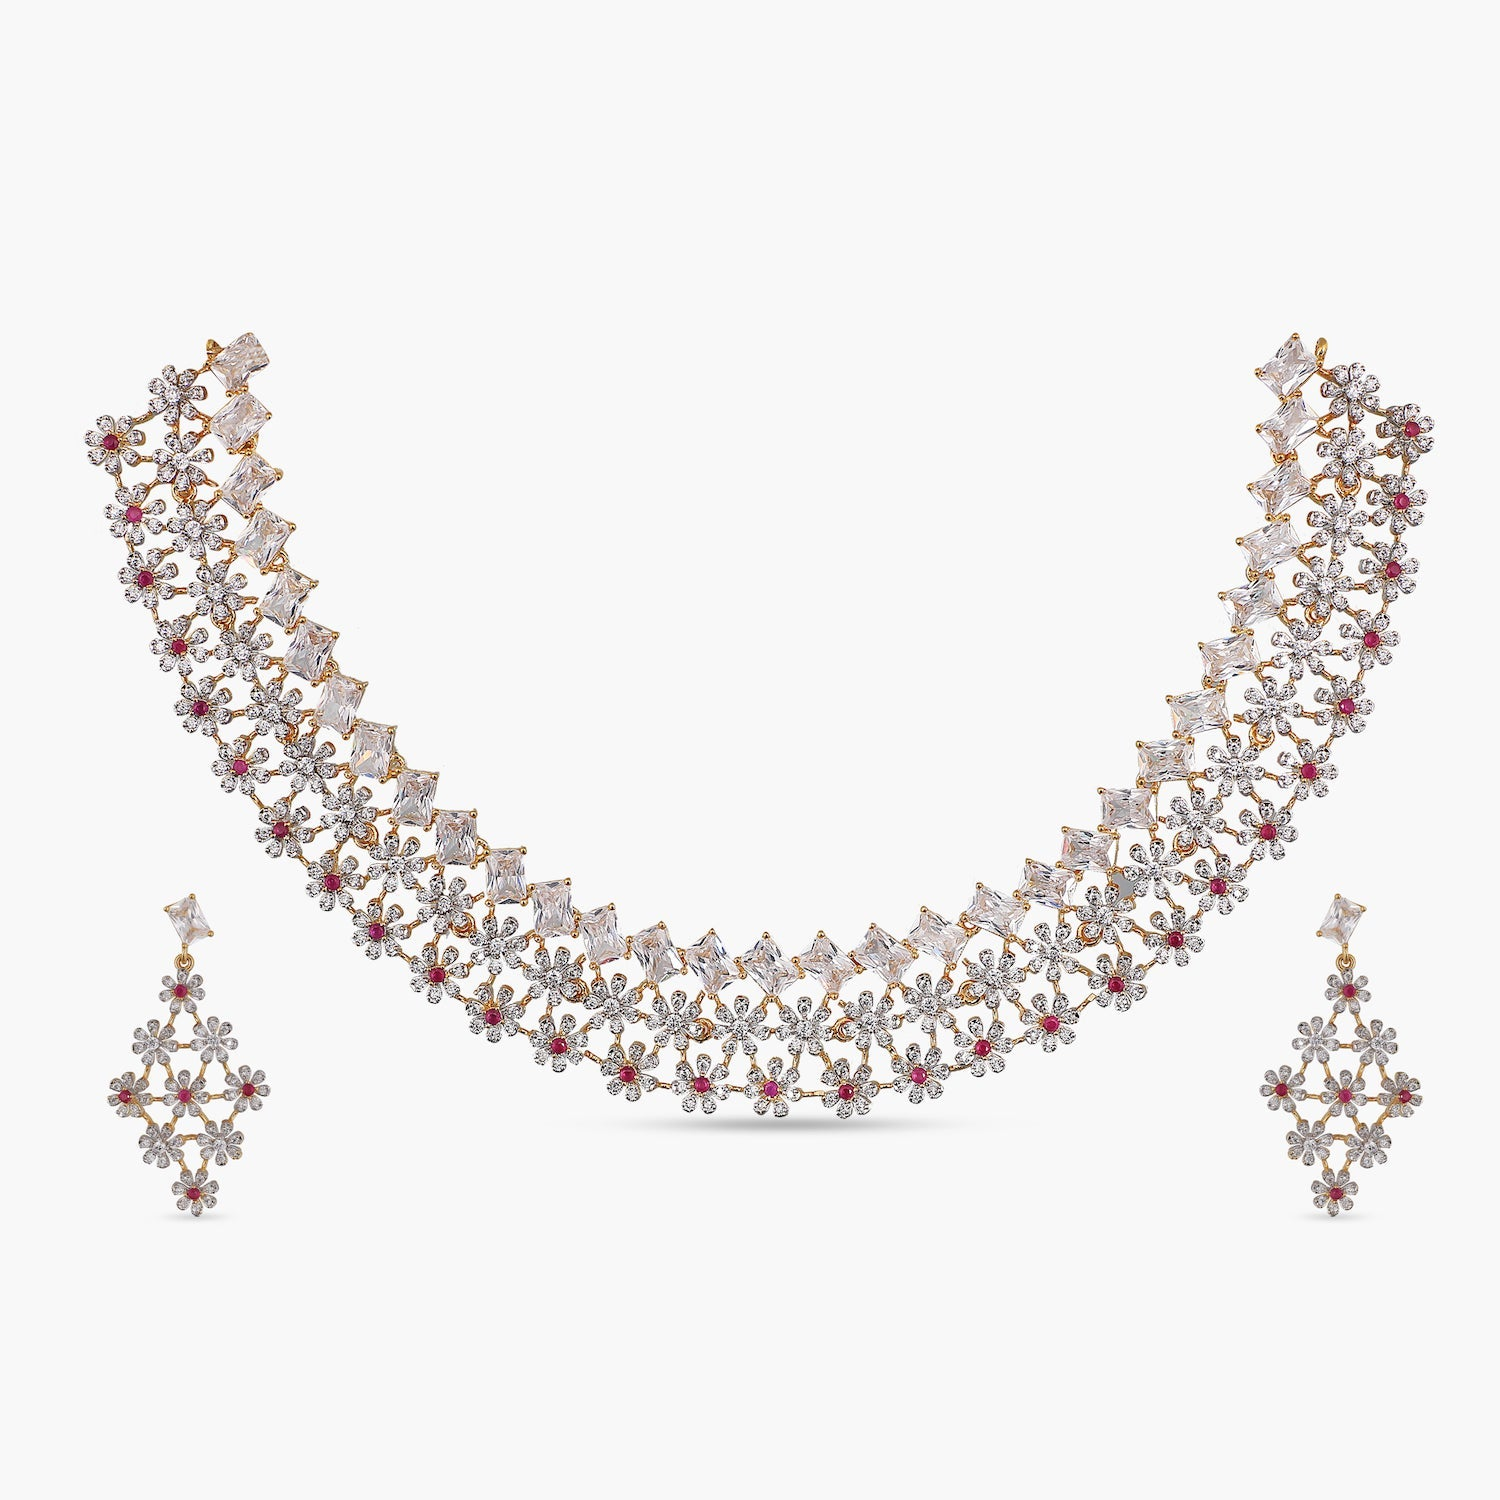 Everly Nakshatra CZ Necklace Set